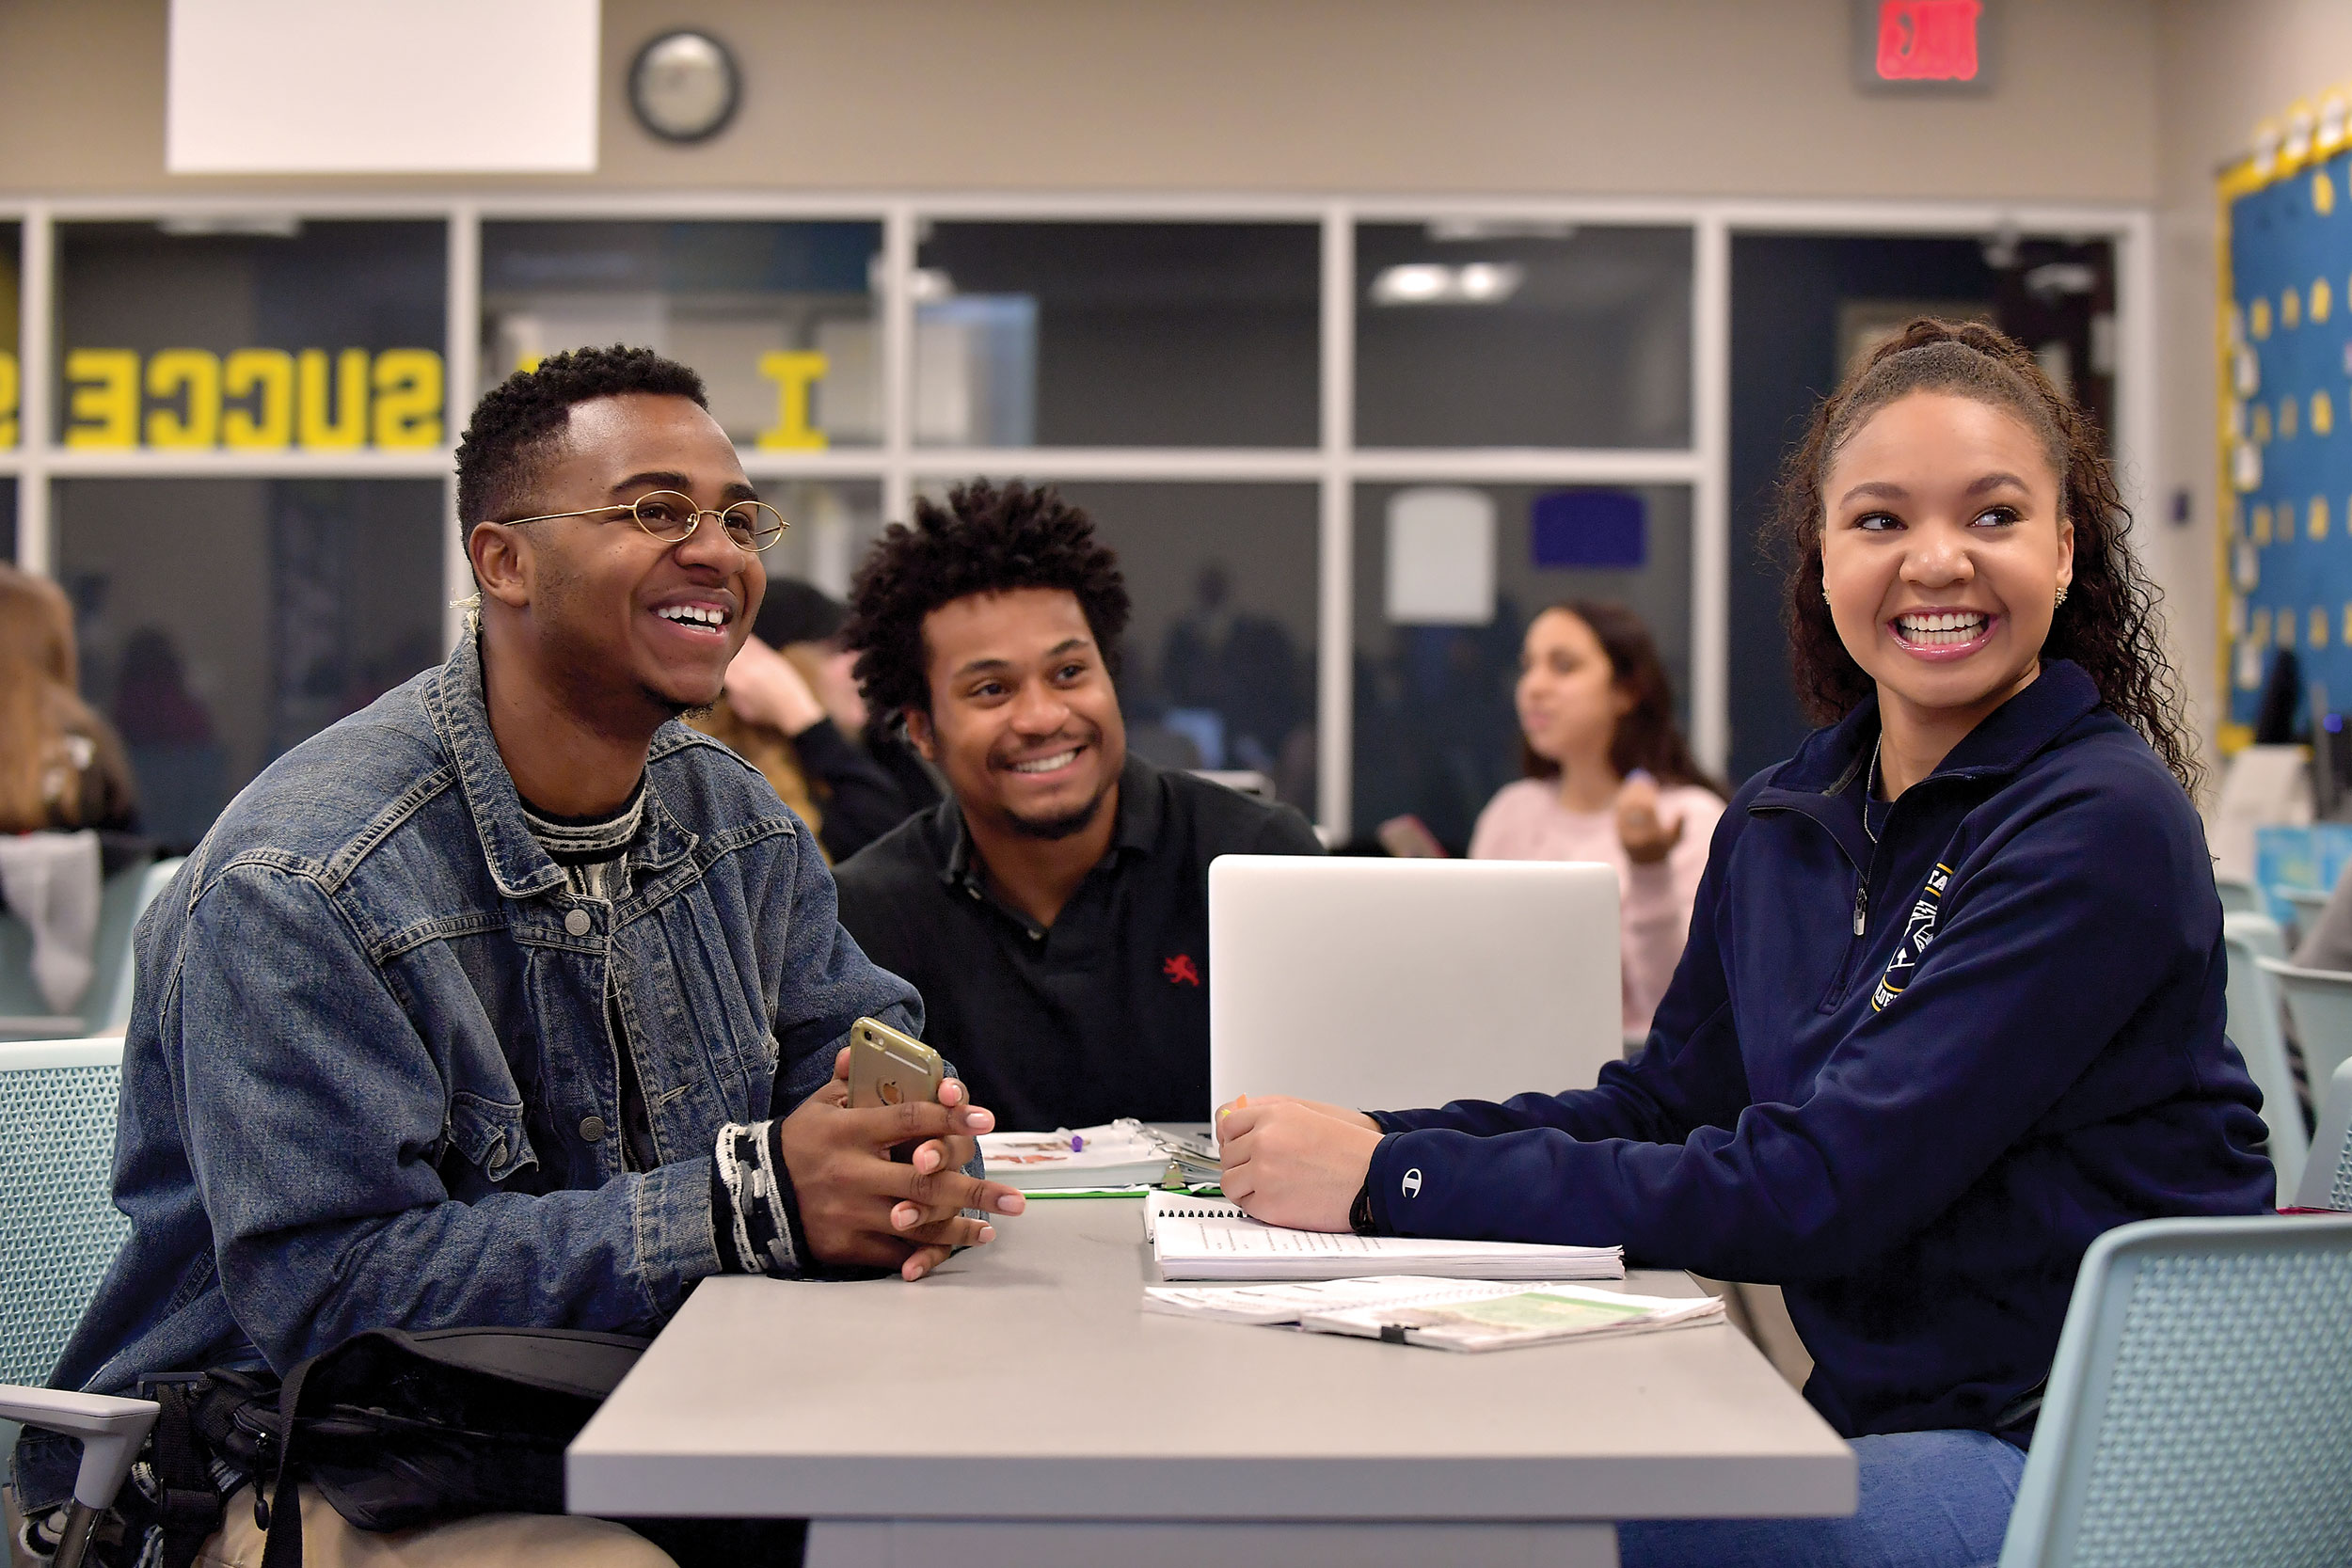 Photo of students, smiling and sitting around a desk with a laptop, looking at the front of the room